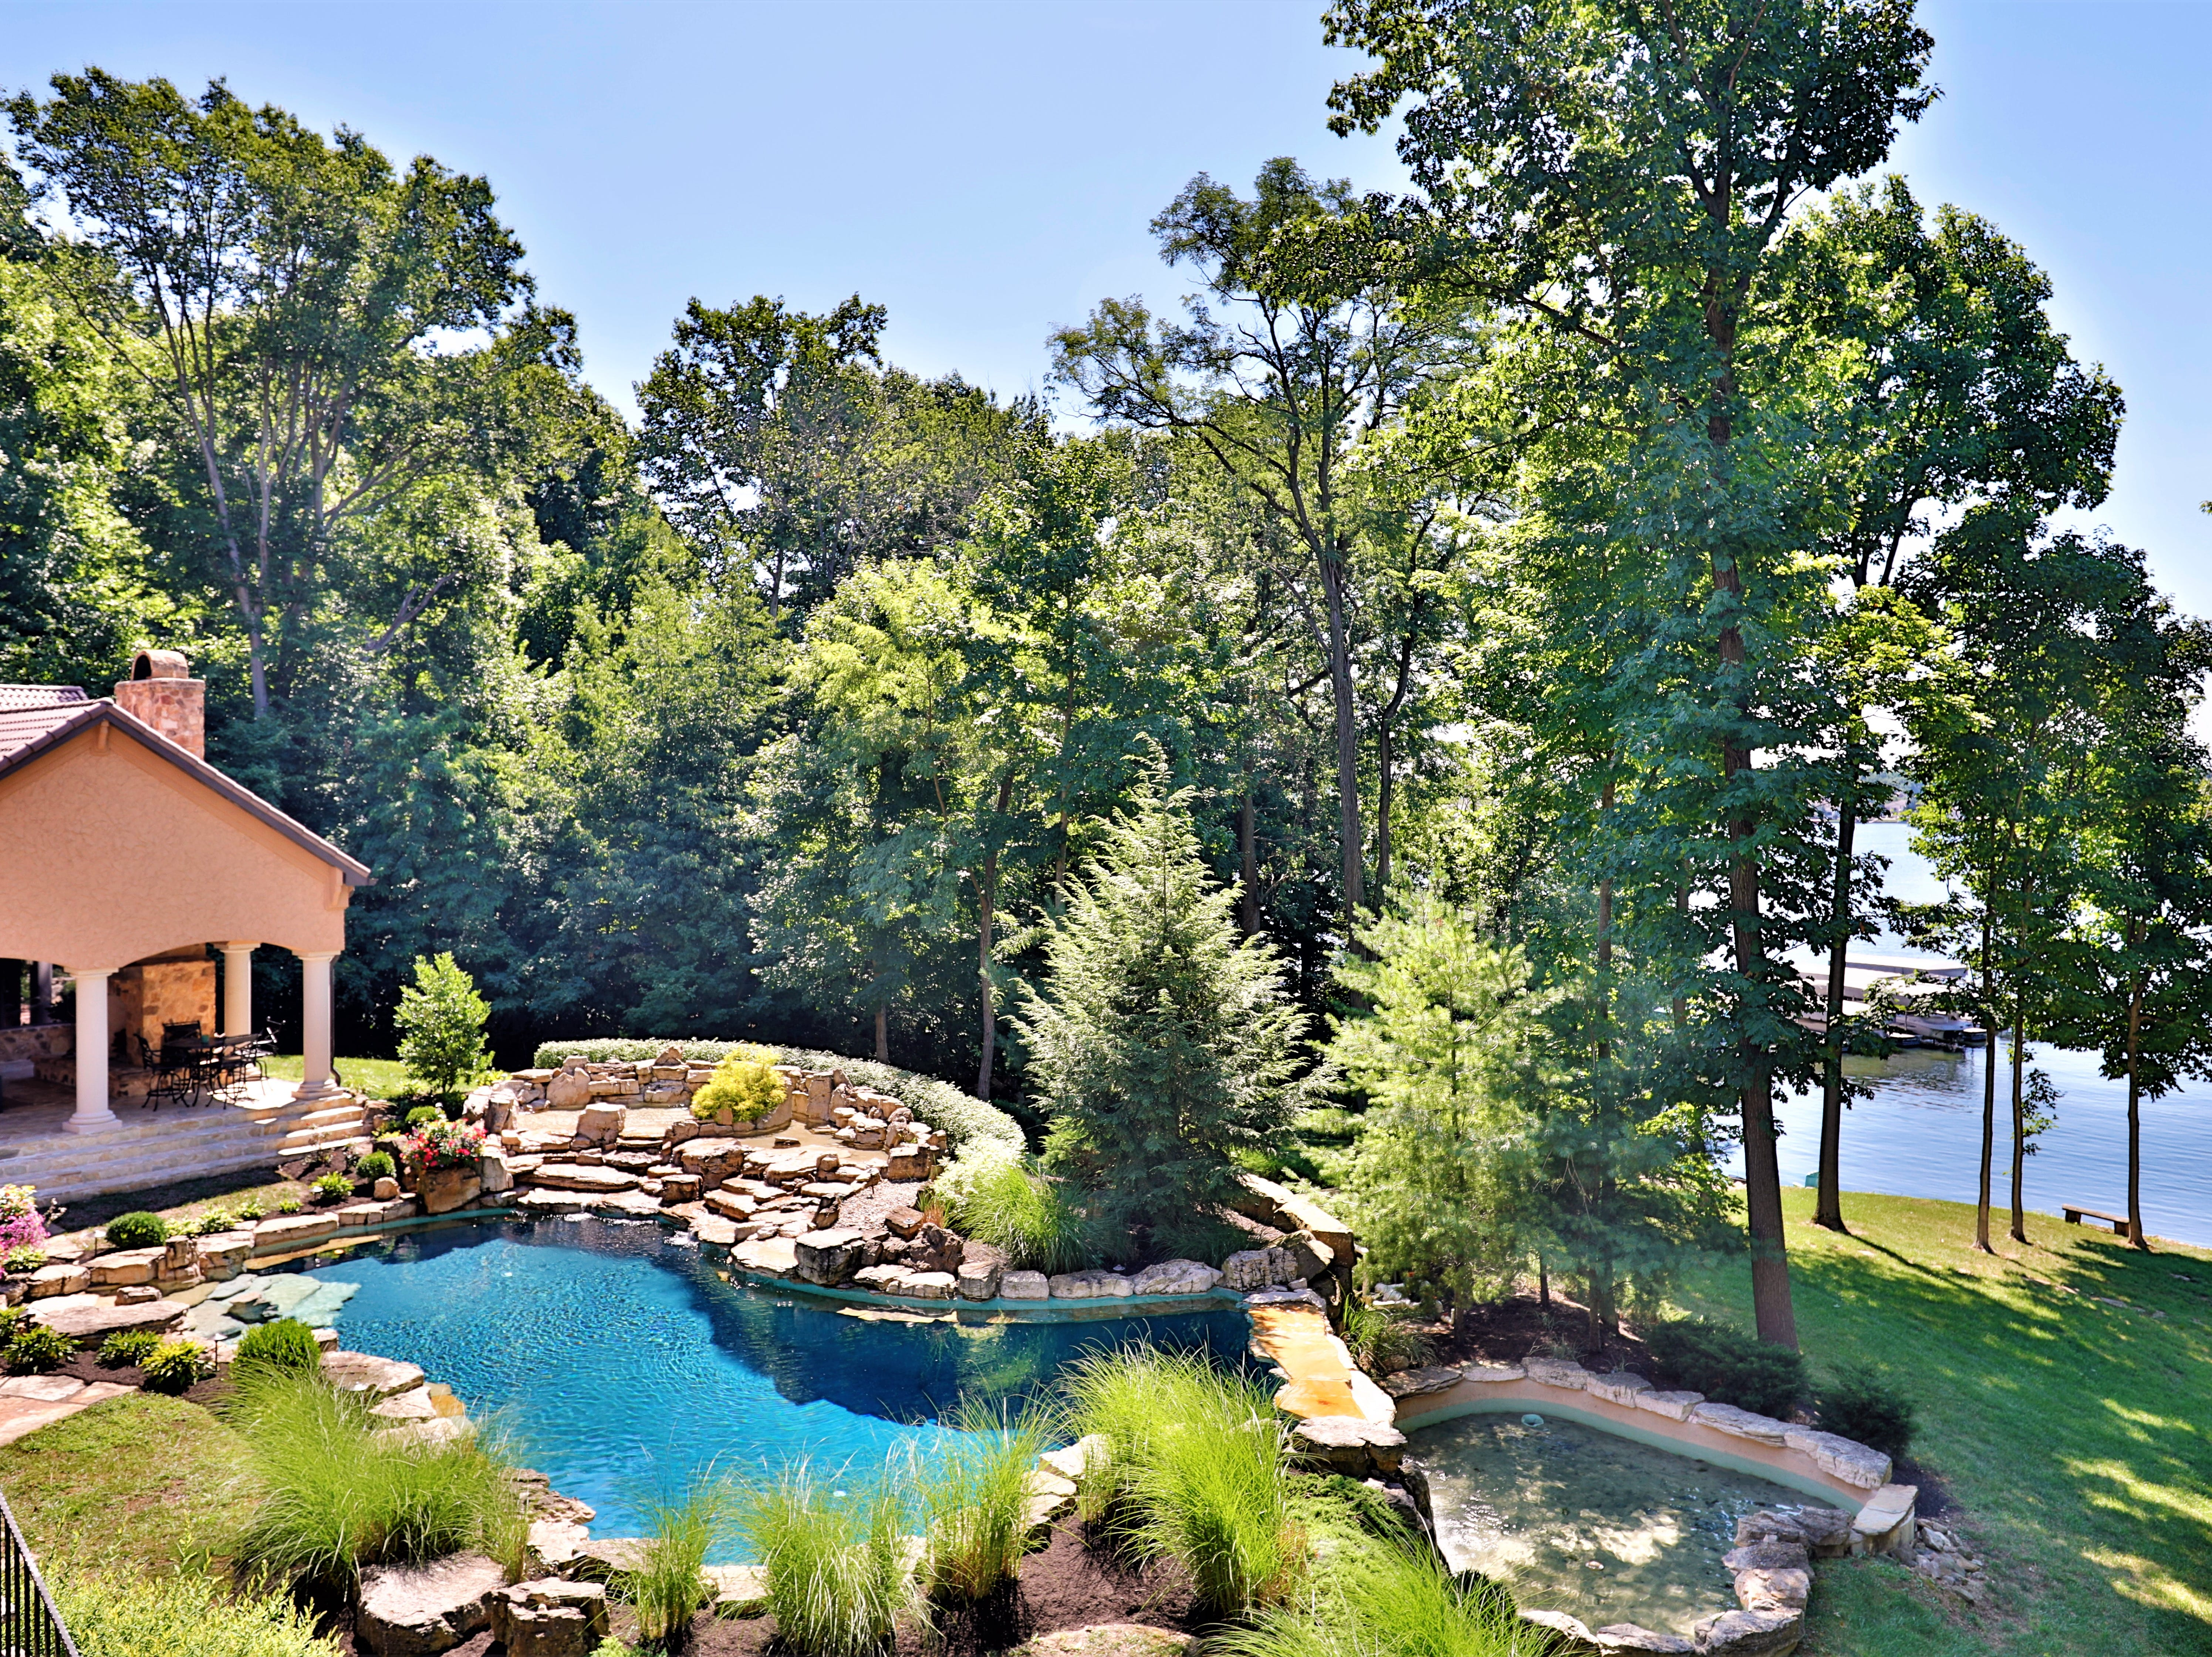 The estate in Fishers sits on 7.4 acres.